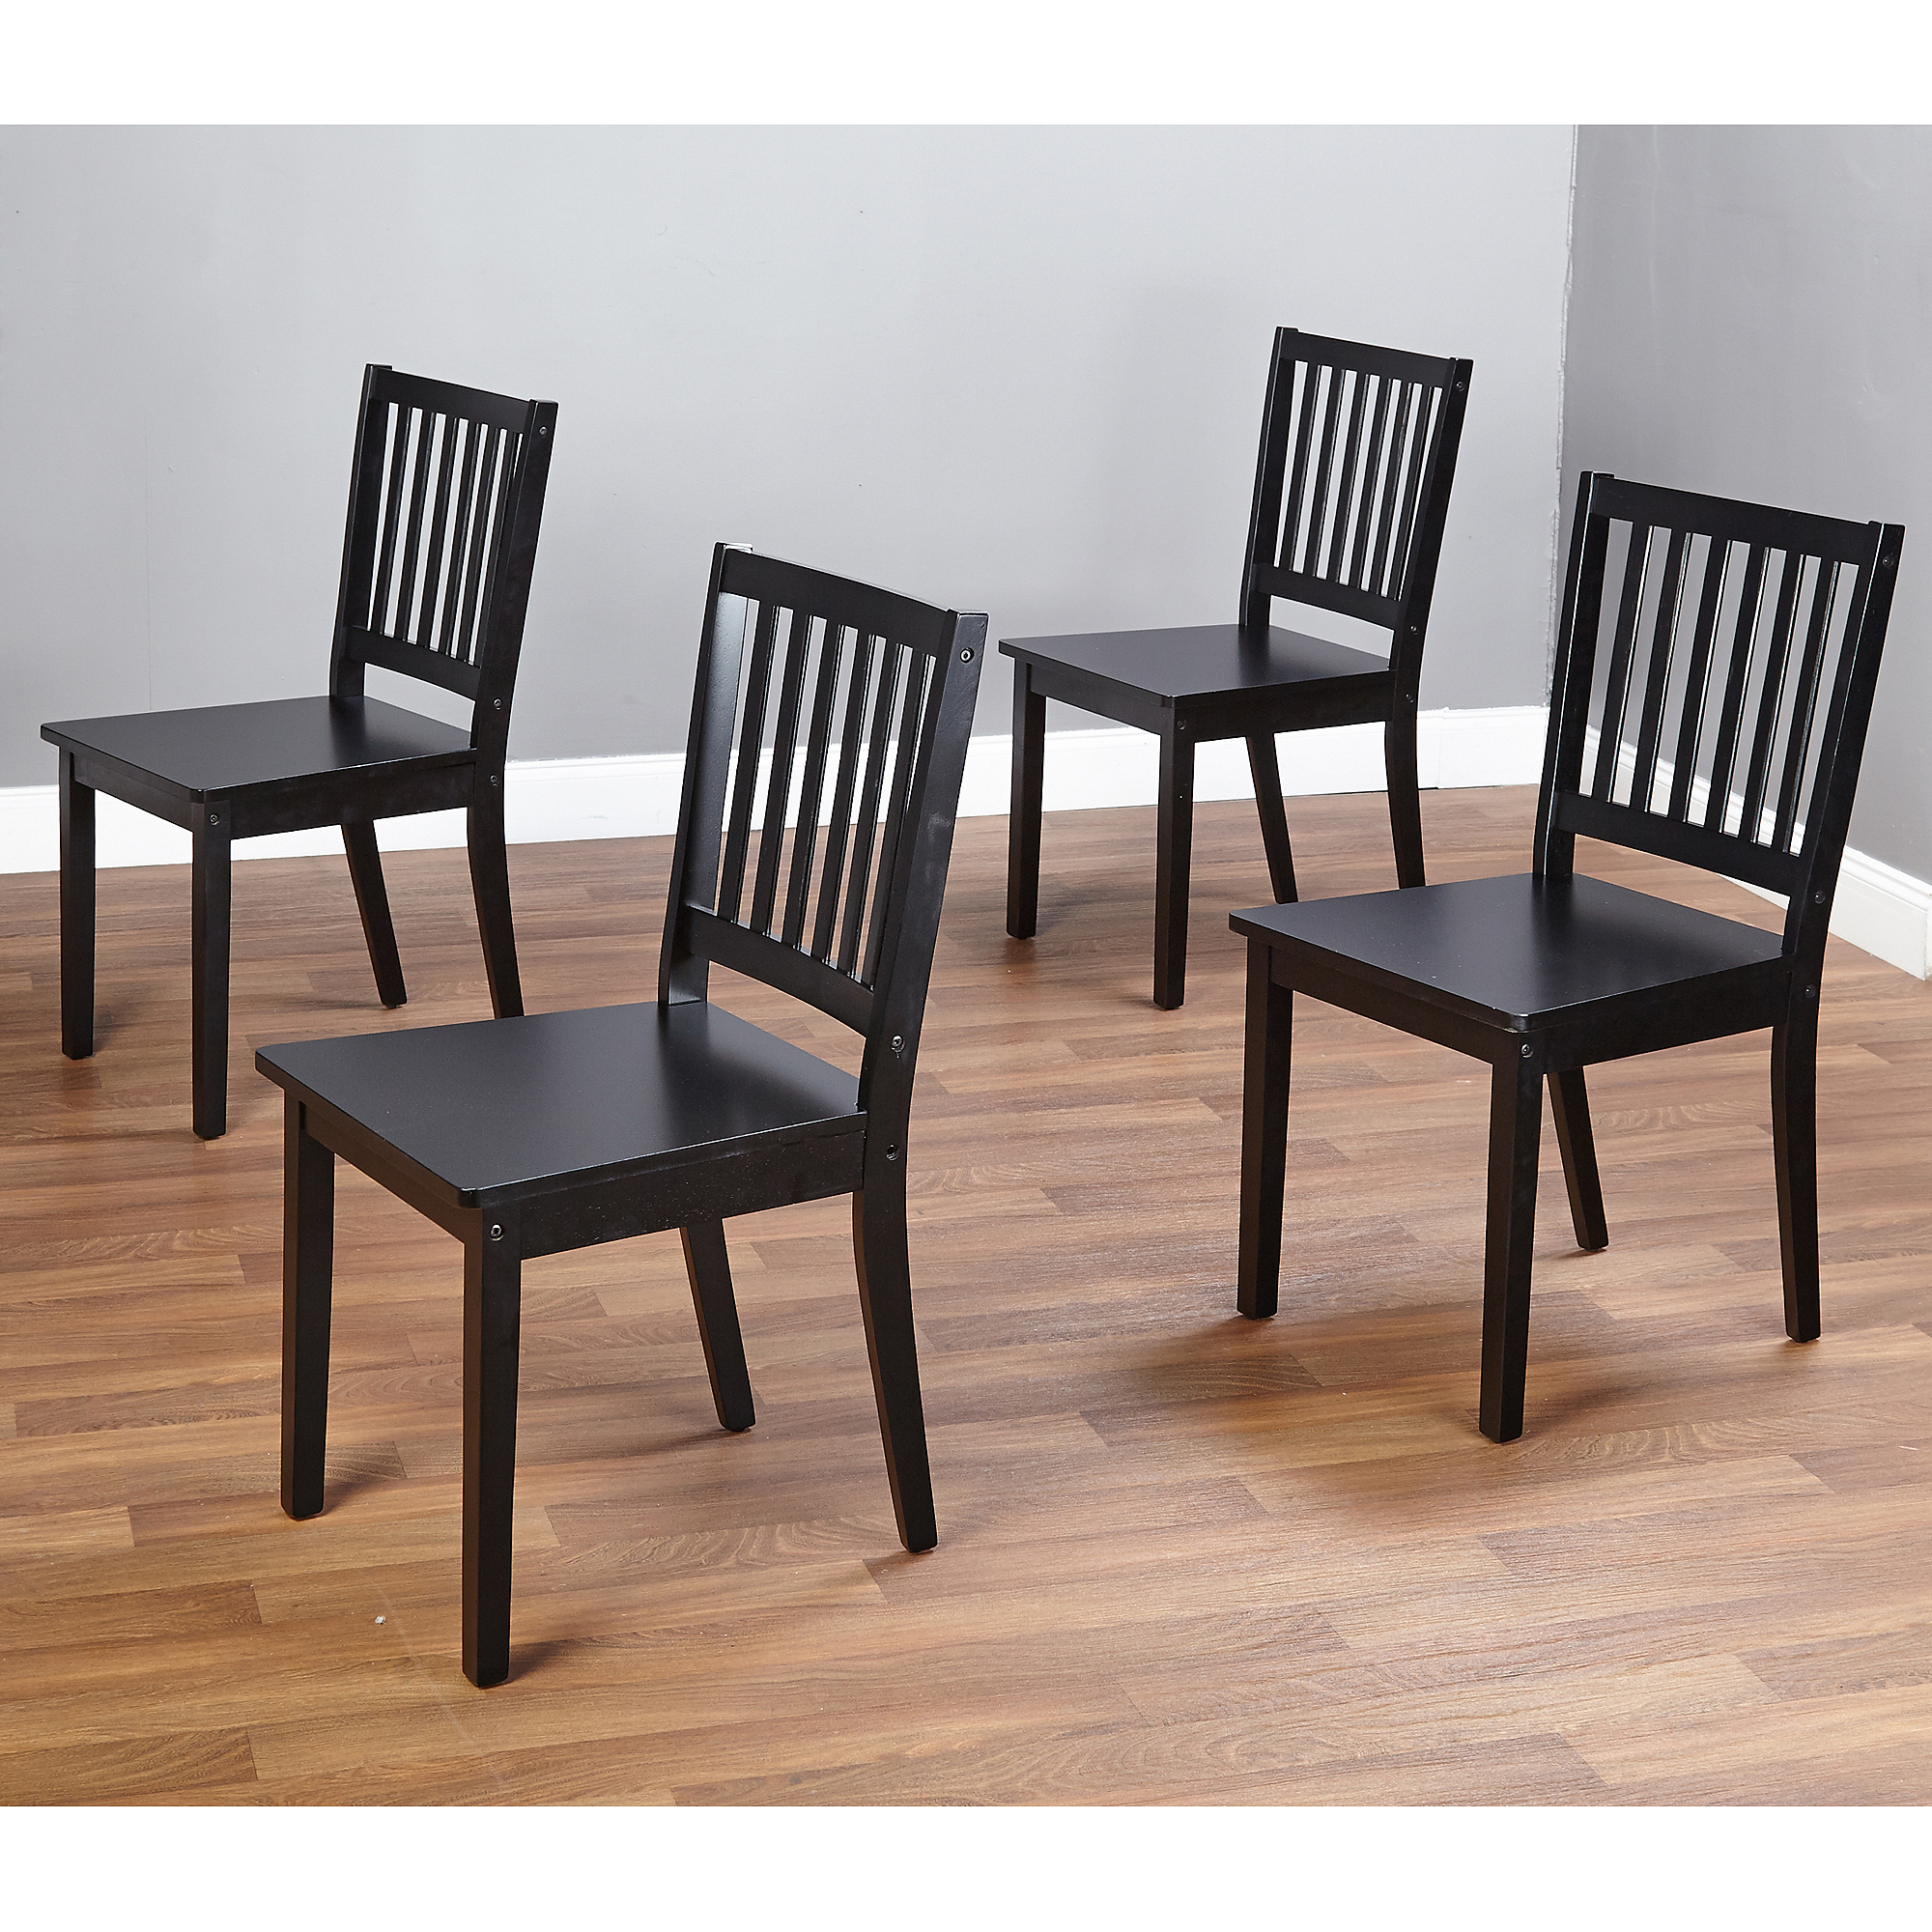 Gentil Shaker Dining Chairs, Set Of 4, Espresso   Walmart.com